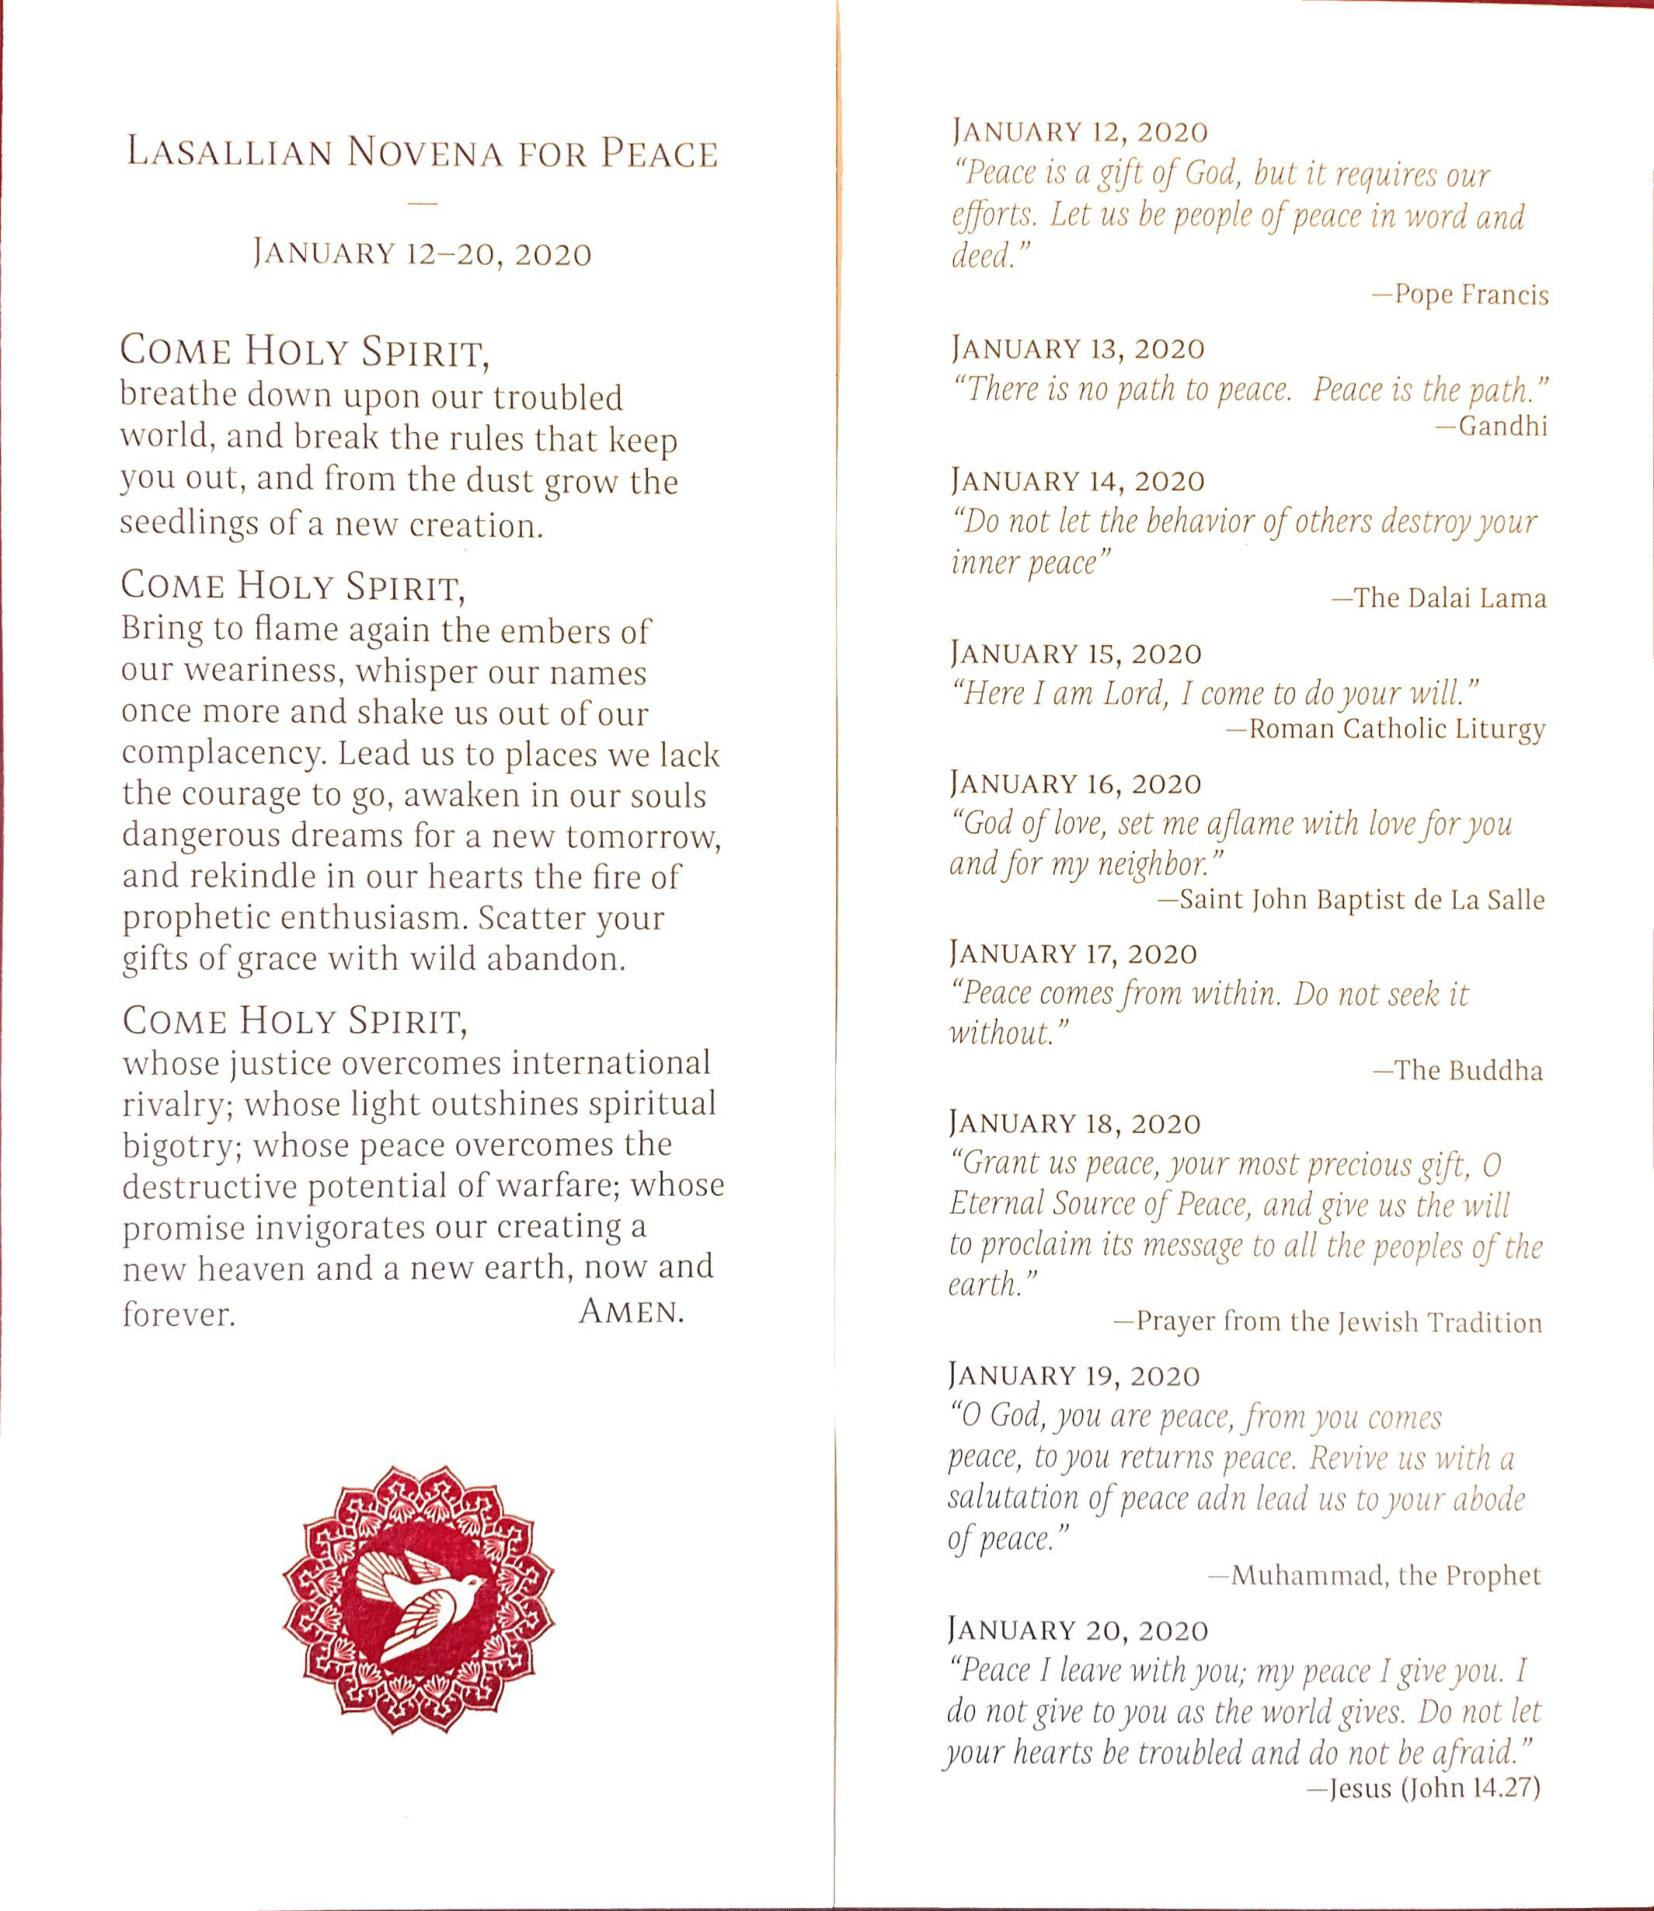 Lasallian Novena for Peace prayer and quotes